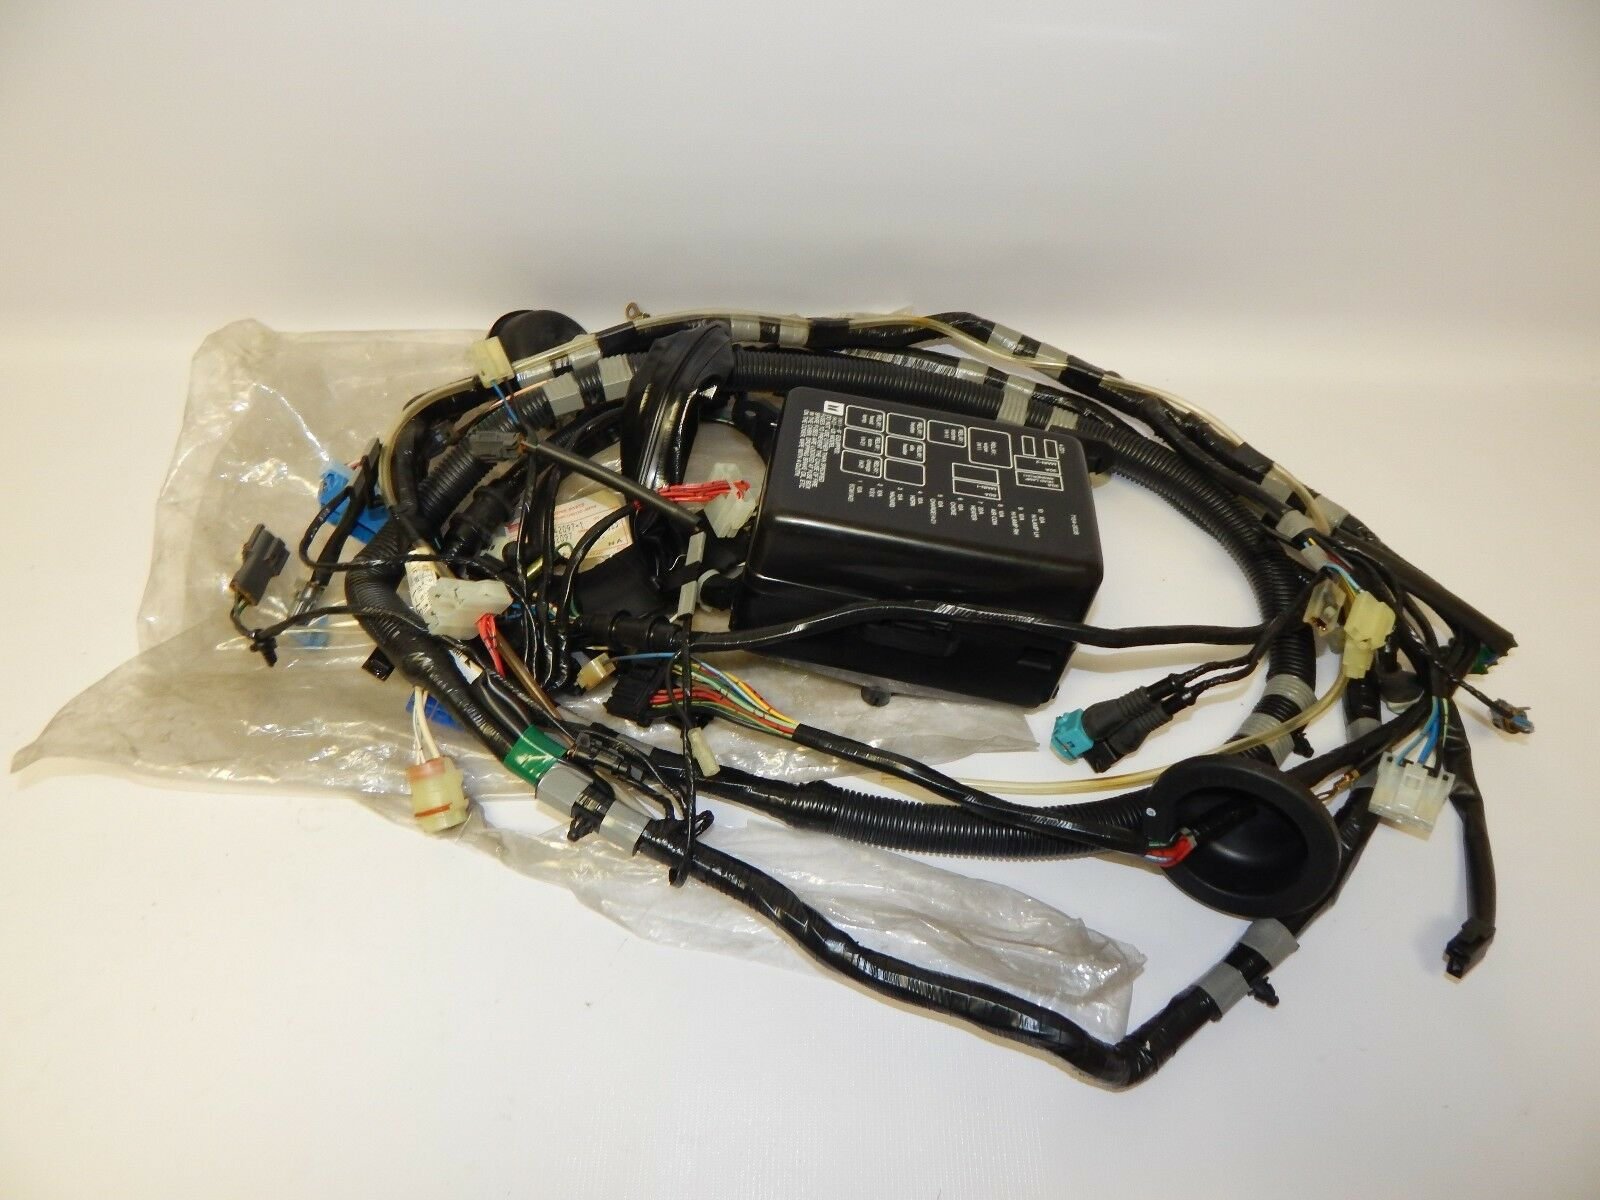 Excellent Ibanez Jem Wiring Thin Ibanez Pickups Round Dimarzio Switch Dimarzio Dp100 Wiring Youthful Alarm And Remote Start Installation BlackBulldog Remote Vehicle Starter System Wire Harness For Vw Bus Polaris Outlaw Engine Diagram Generac Ohvi ..